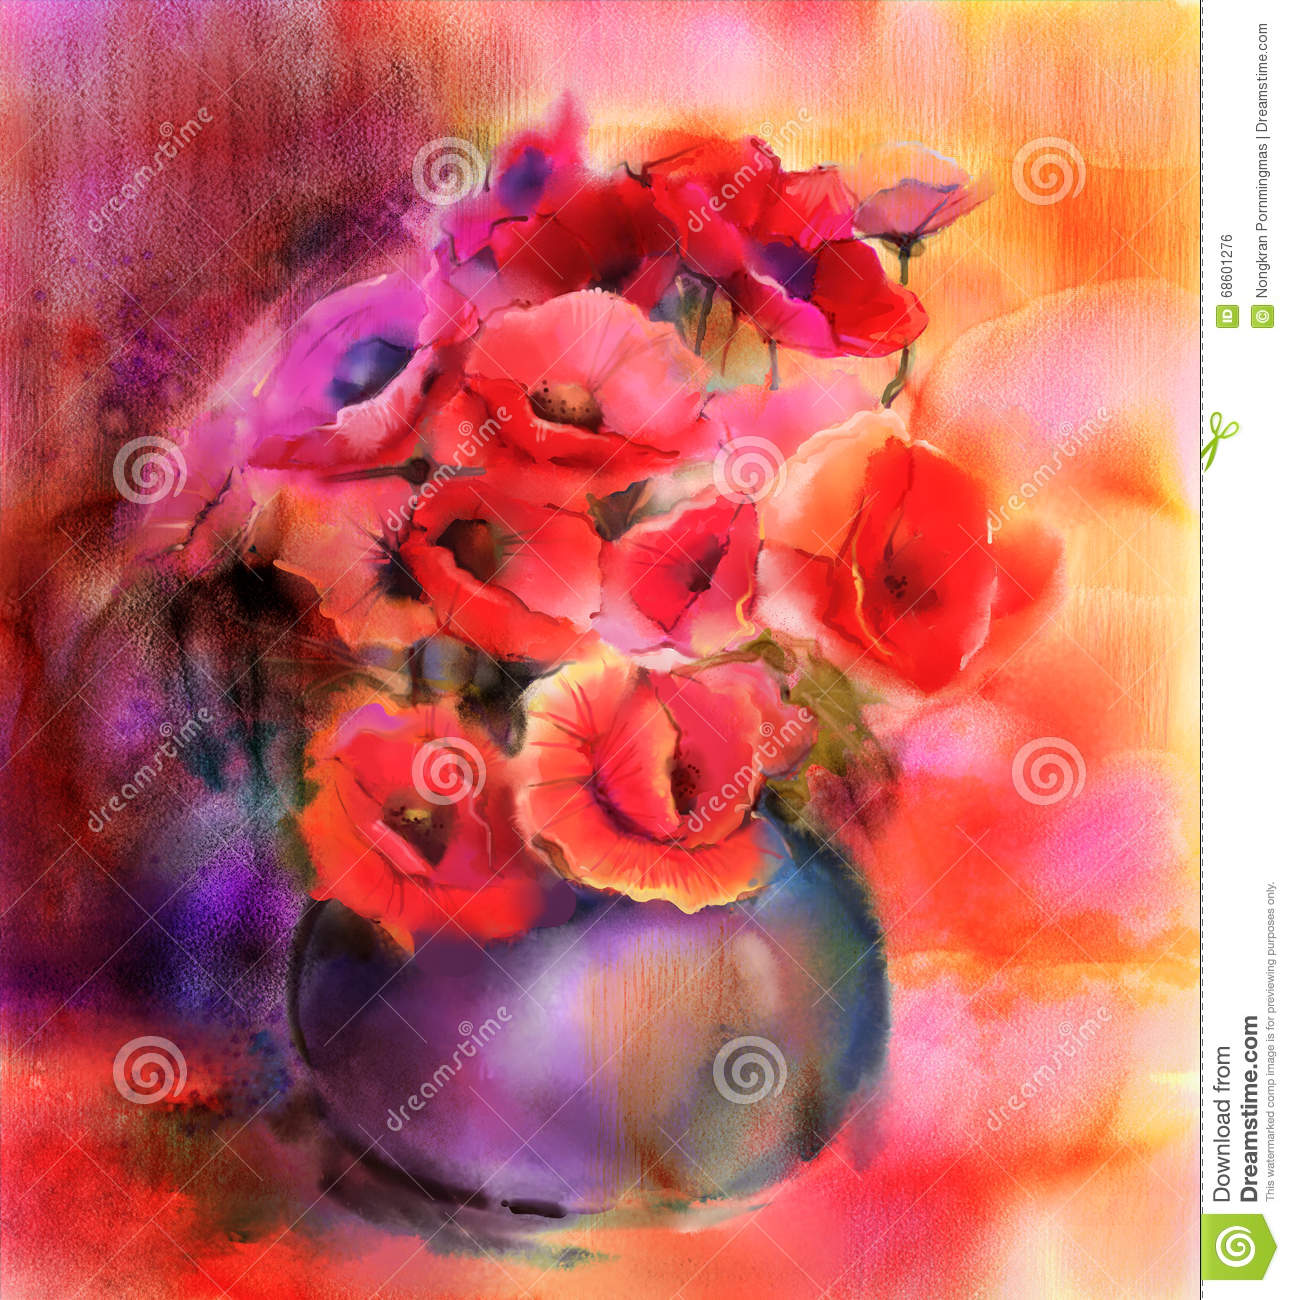 Watercolor Painting Colorful Bouquet Of Poppy Flowers In Vase Stock ...